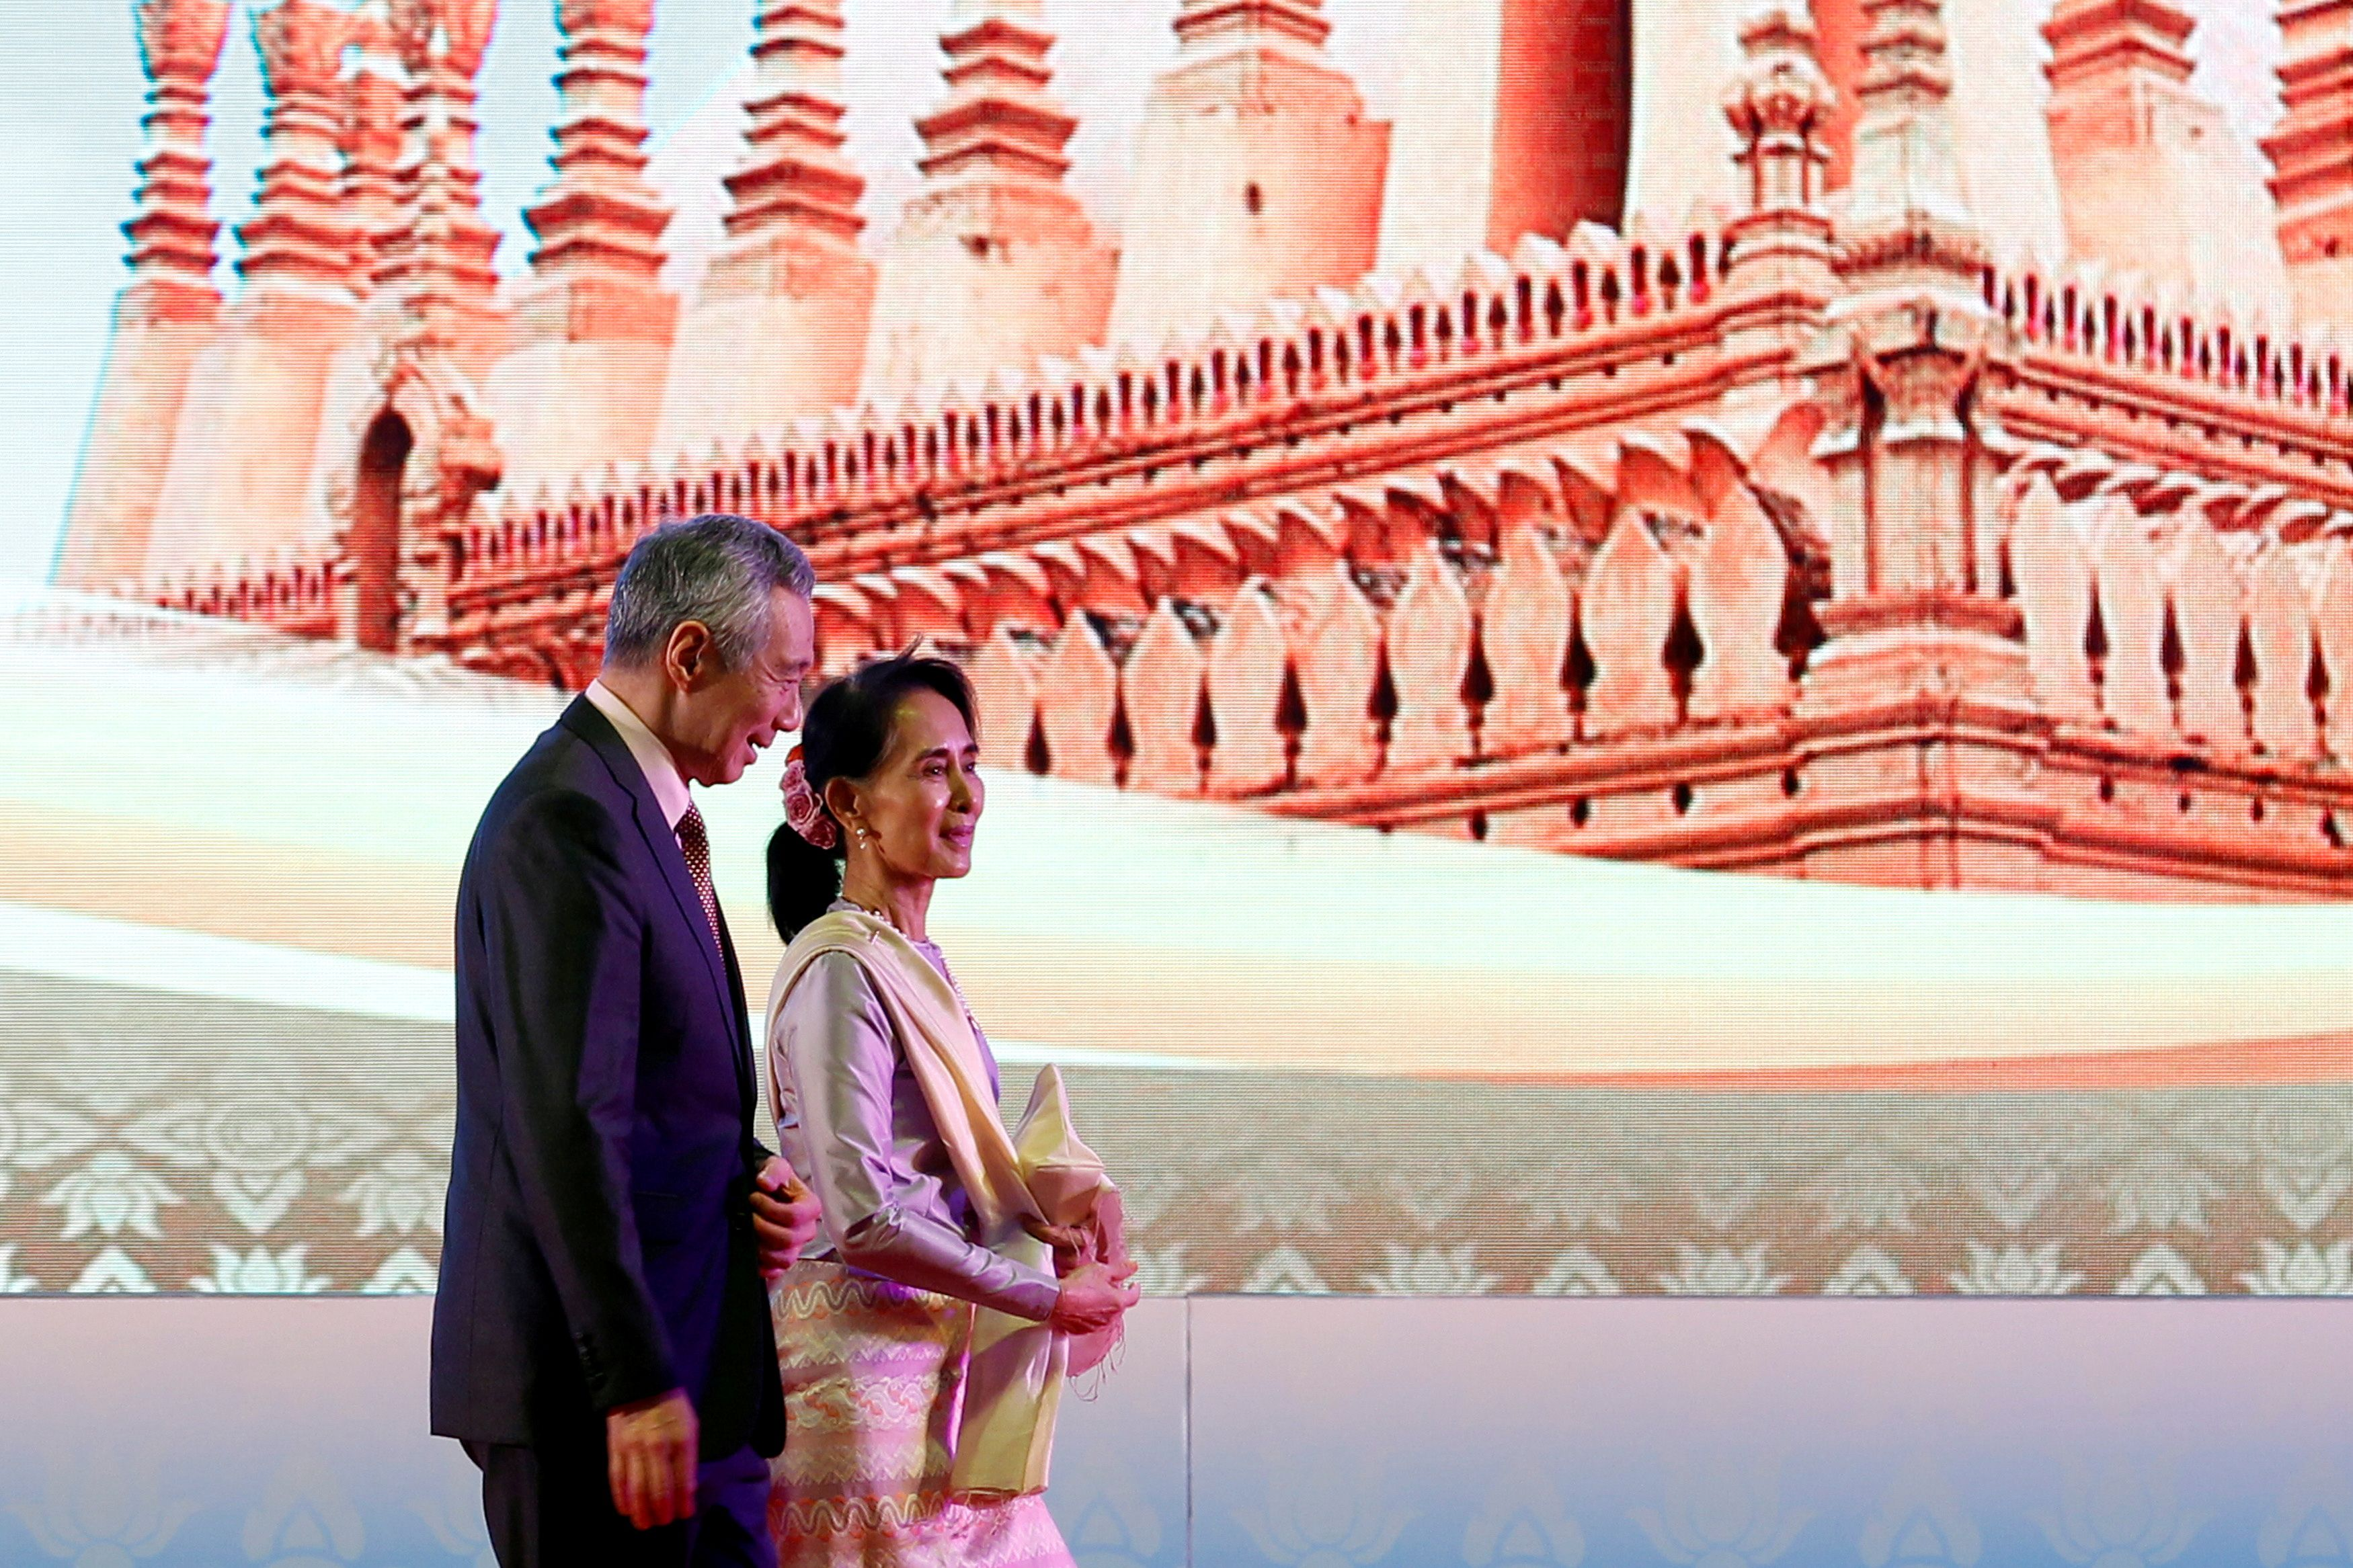 Myanmar leader Aung San Suu Kyi and Singapore's Prime Minister Lee Hsien Loong leave the opening ceremony of an ASEAN Summit in Vientiane, Laos September 6, 2016.  REUTERS/Soe Zeya Tun/File Photo